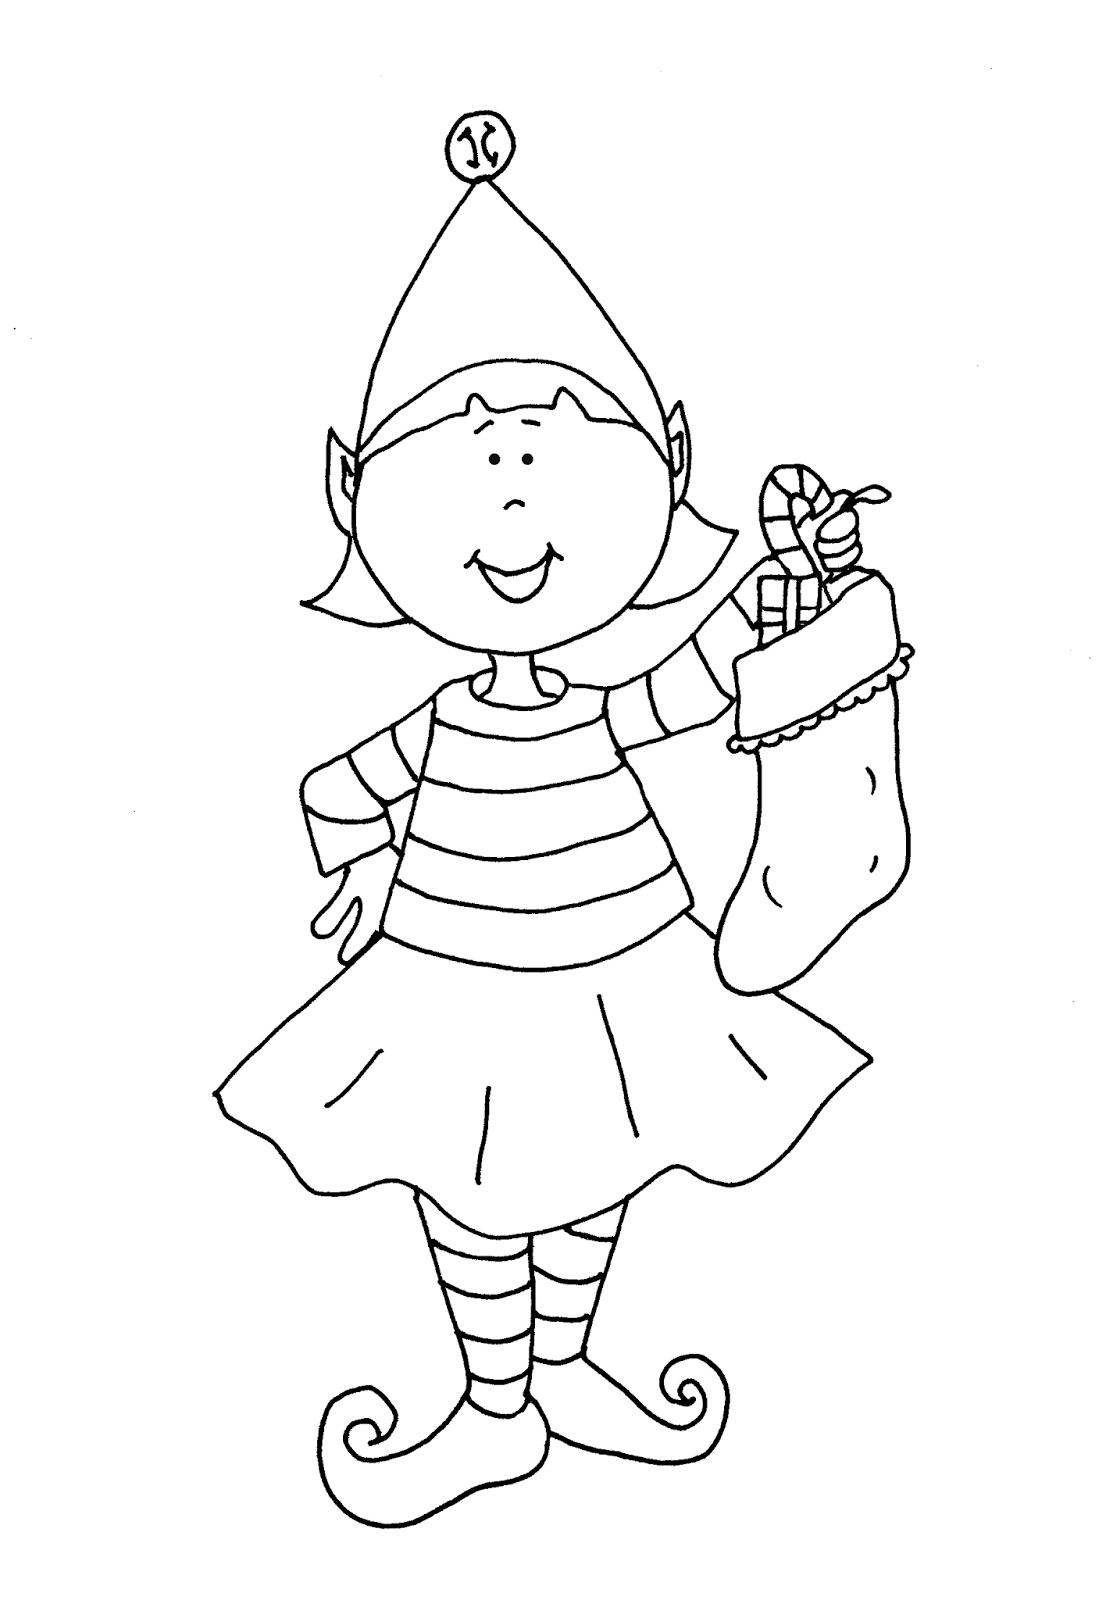 coloring pages elves christmas elf drawing at getdrawingscom free for elves pages coloring